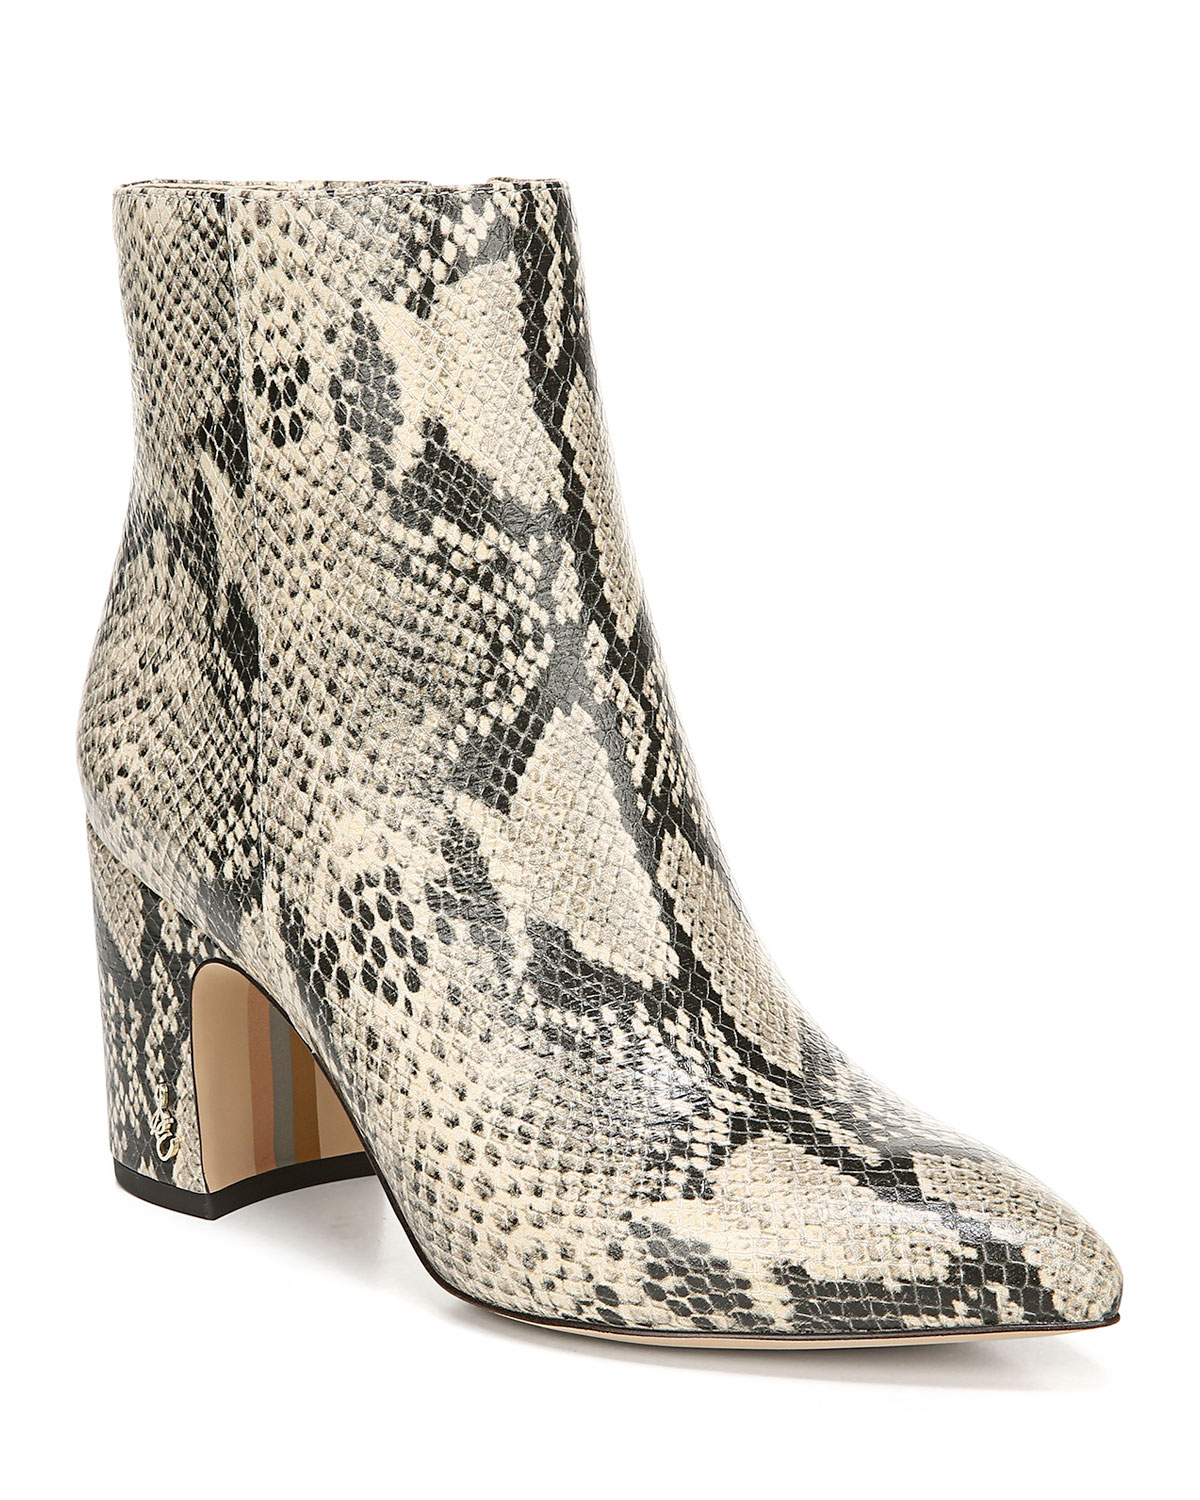 Hilty Snake Print Leather Booties by Sam Edelman